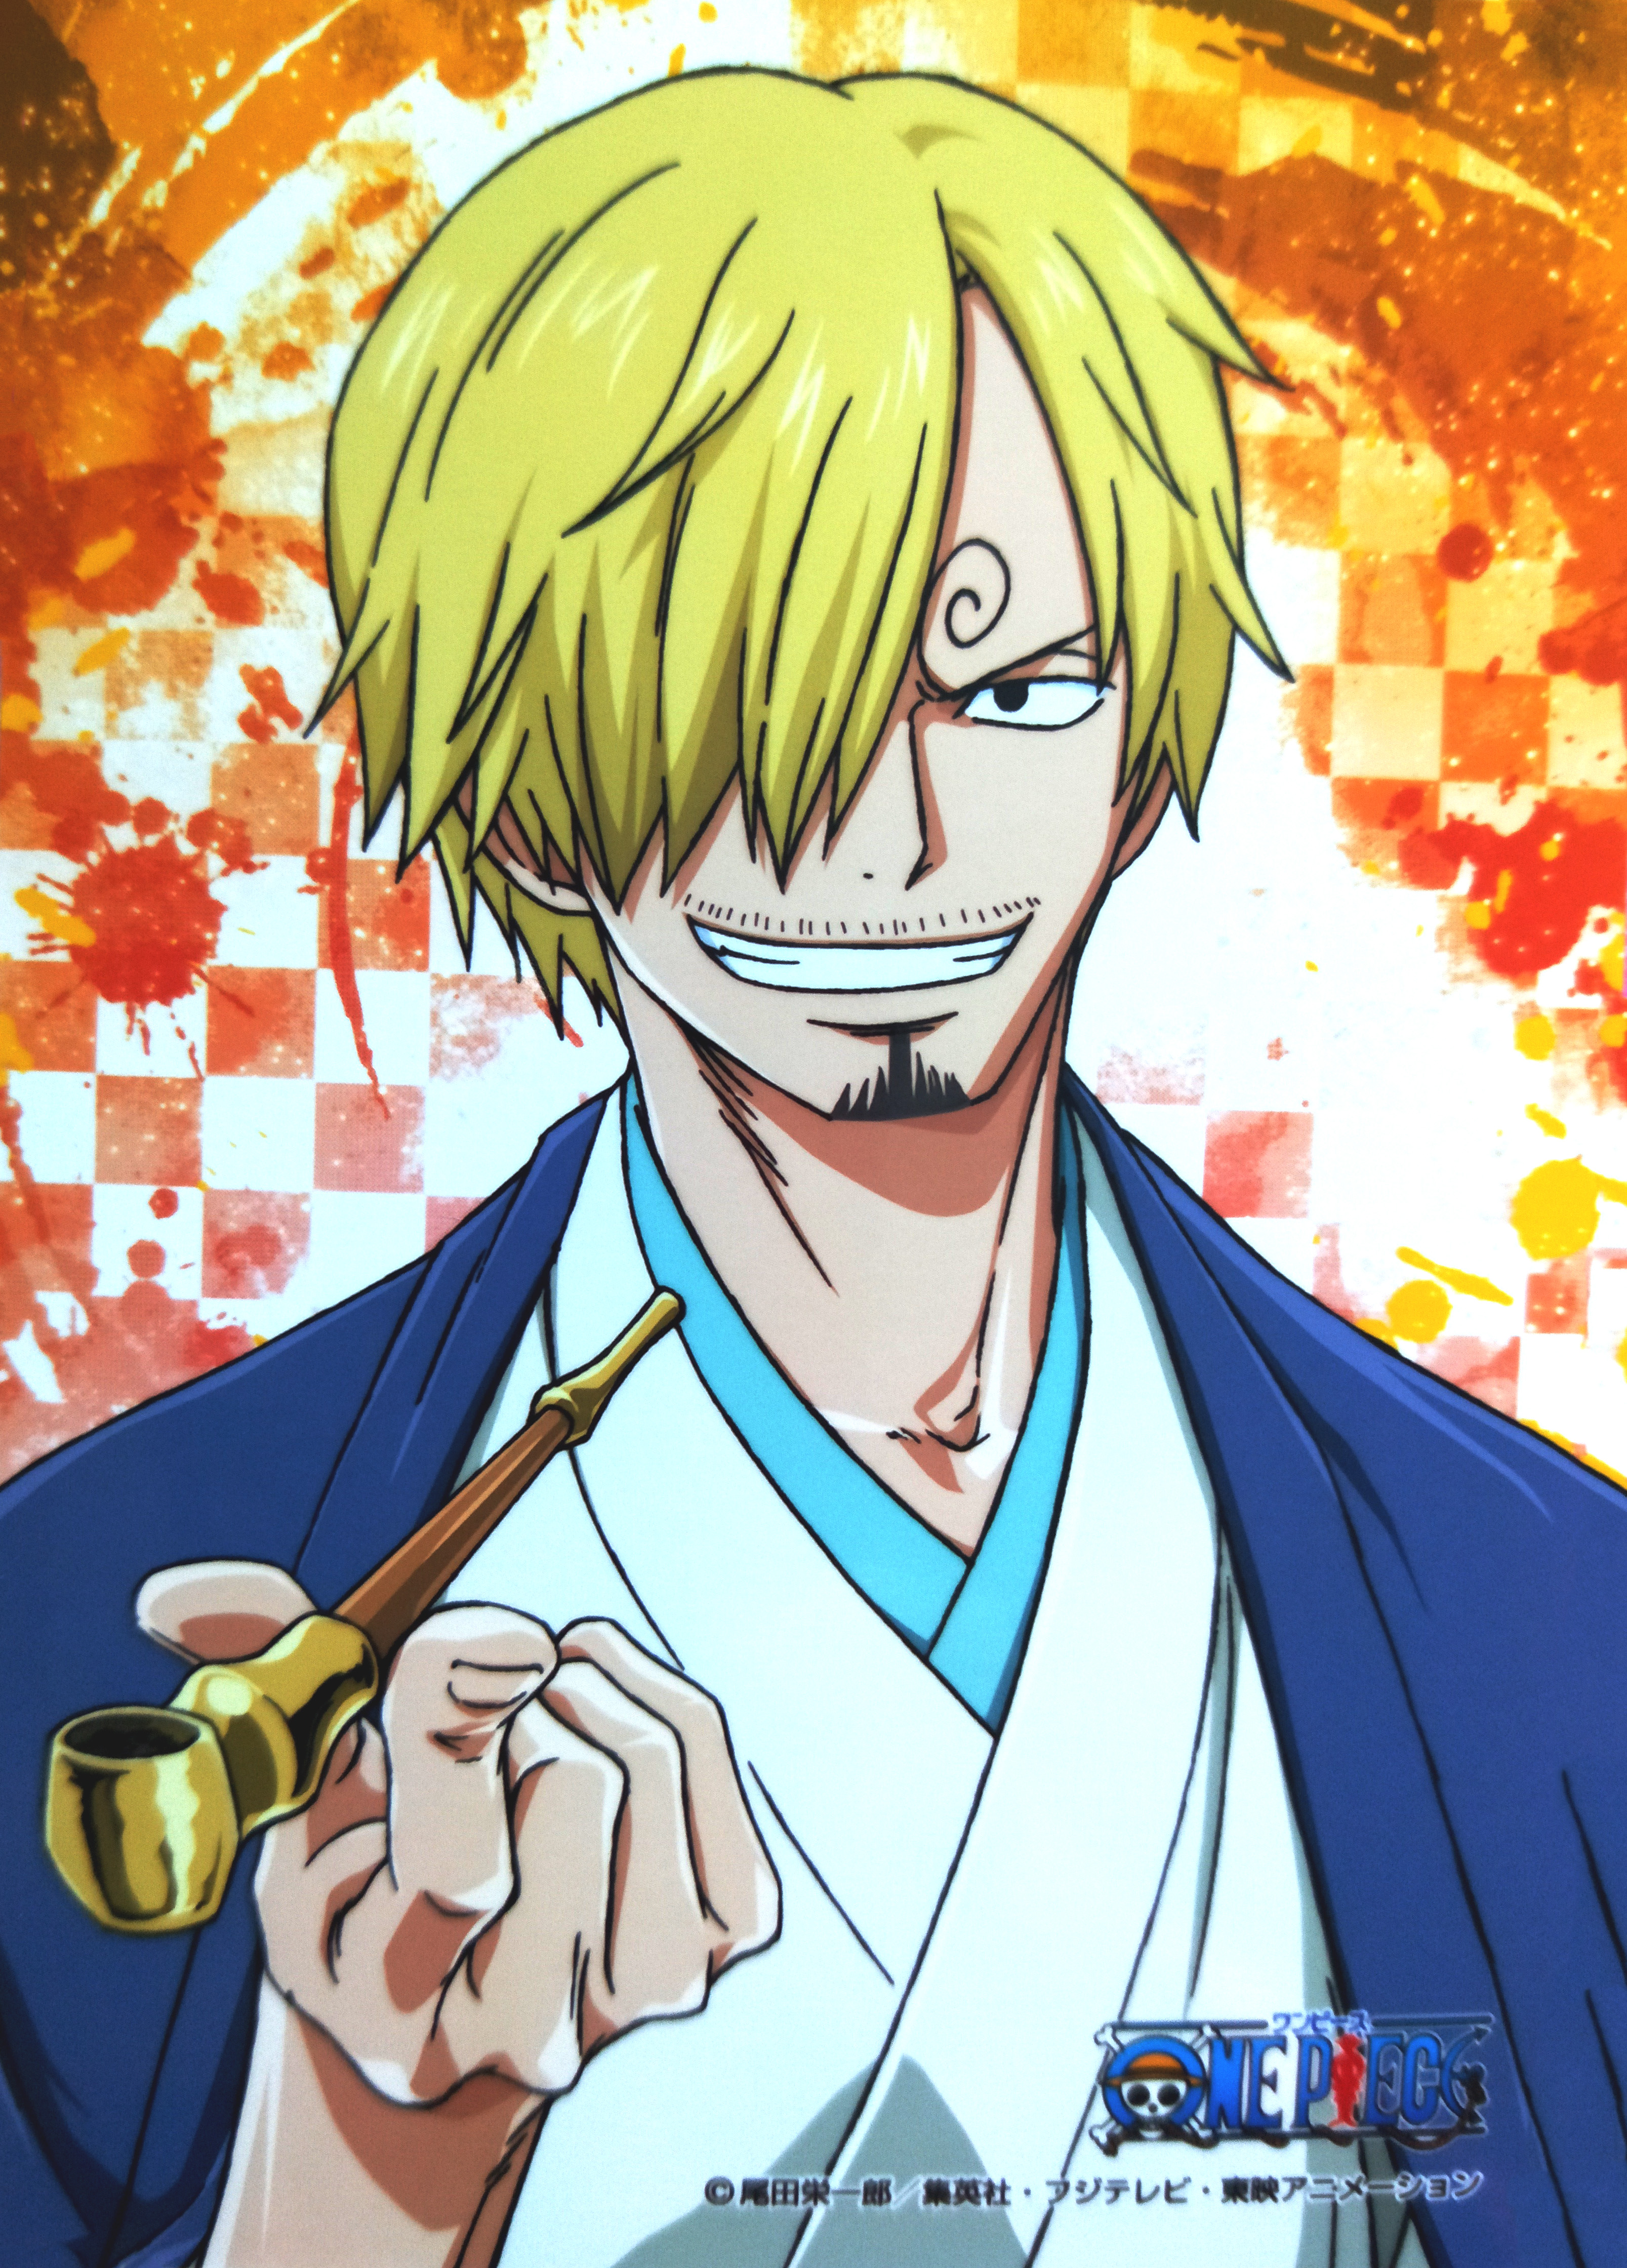 Sanji One Piece Image 2464381 Zerochan Anime Image Board